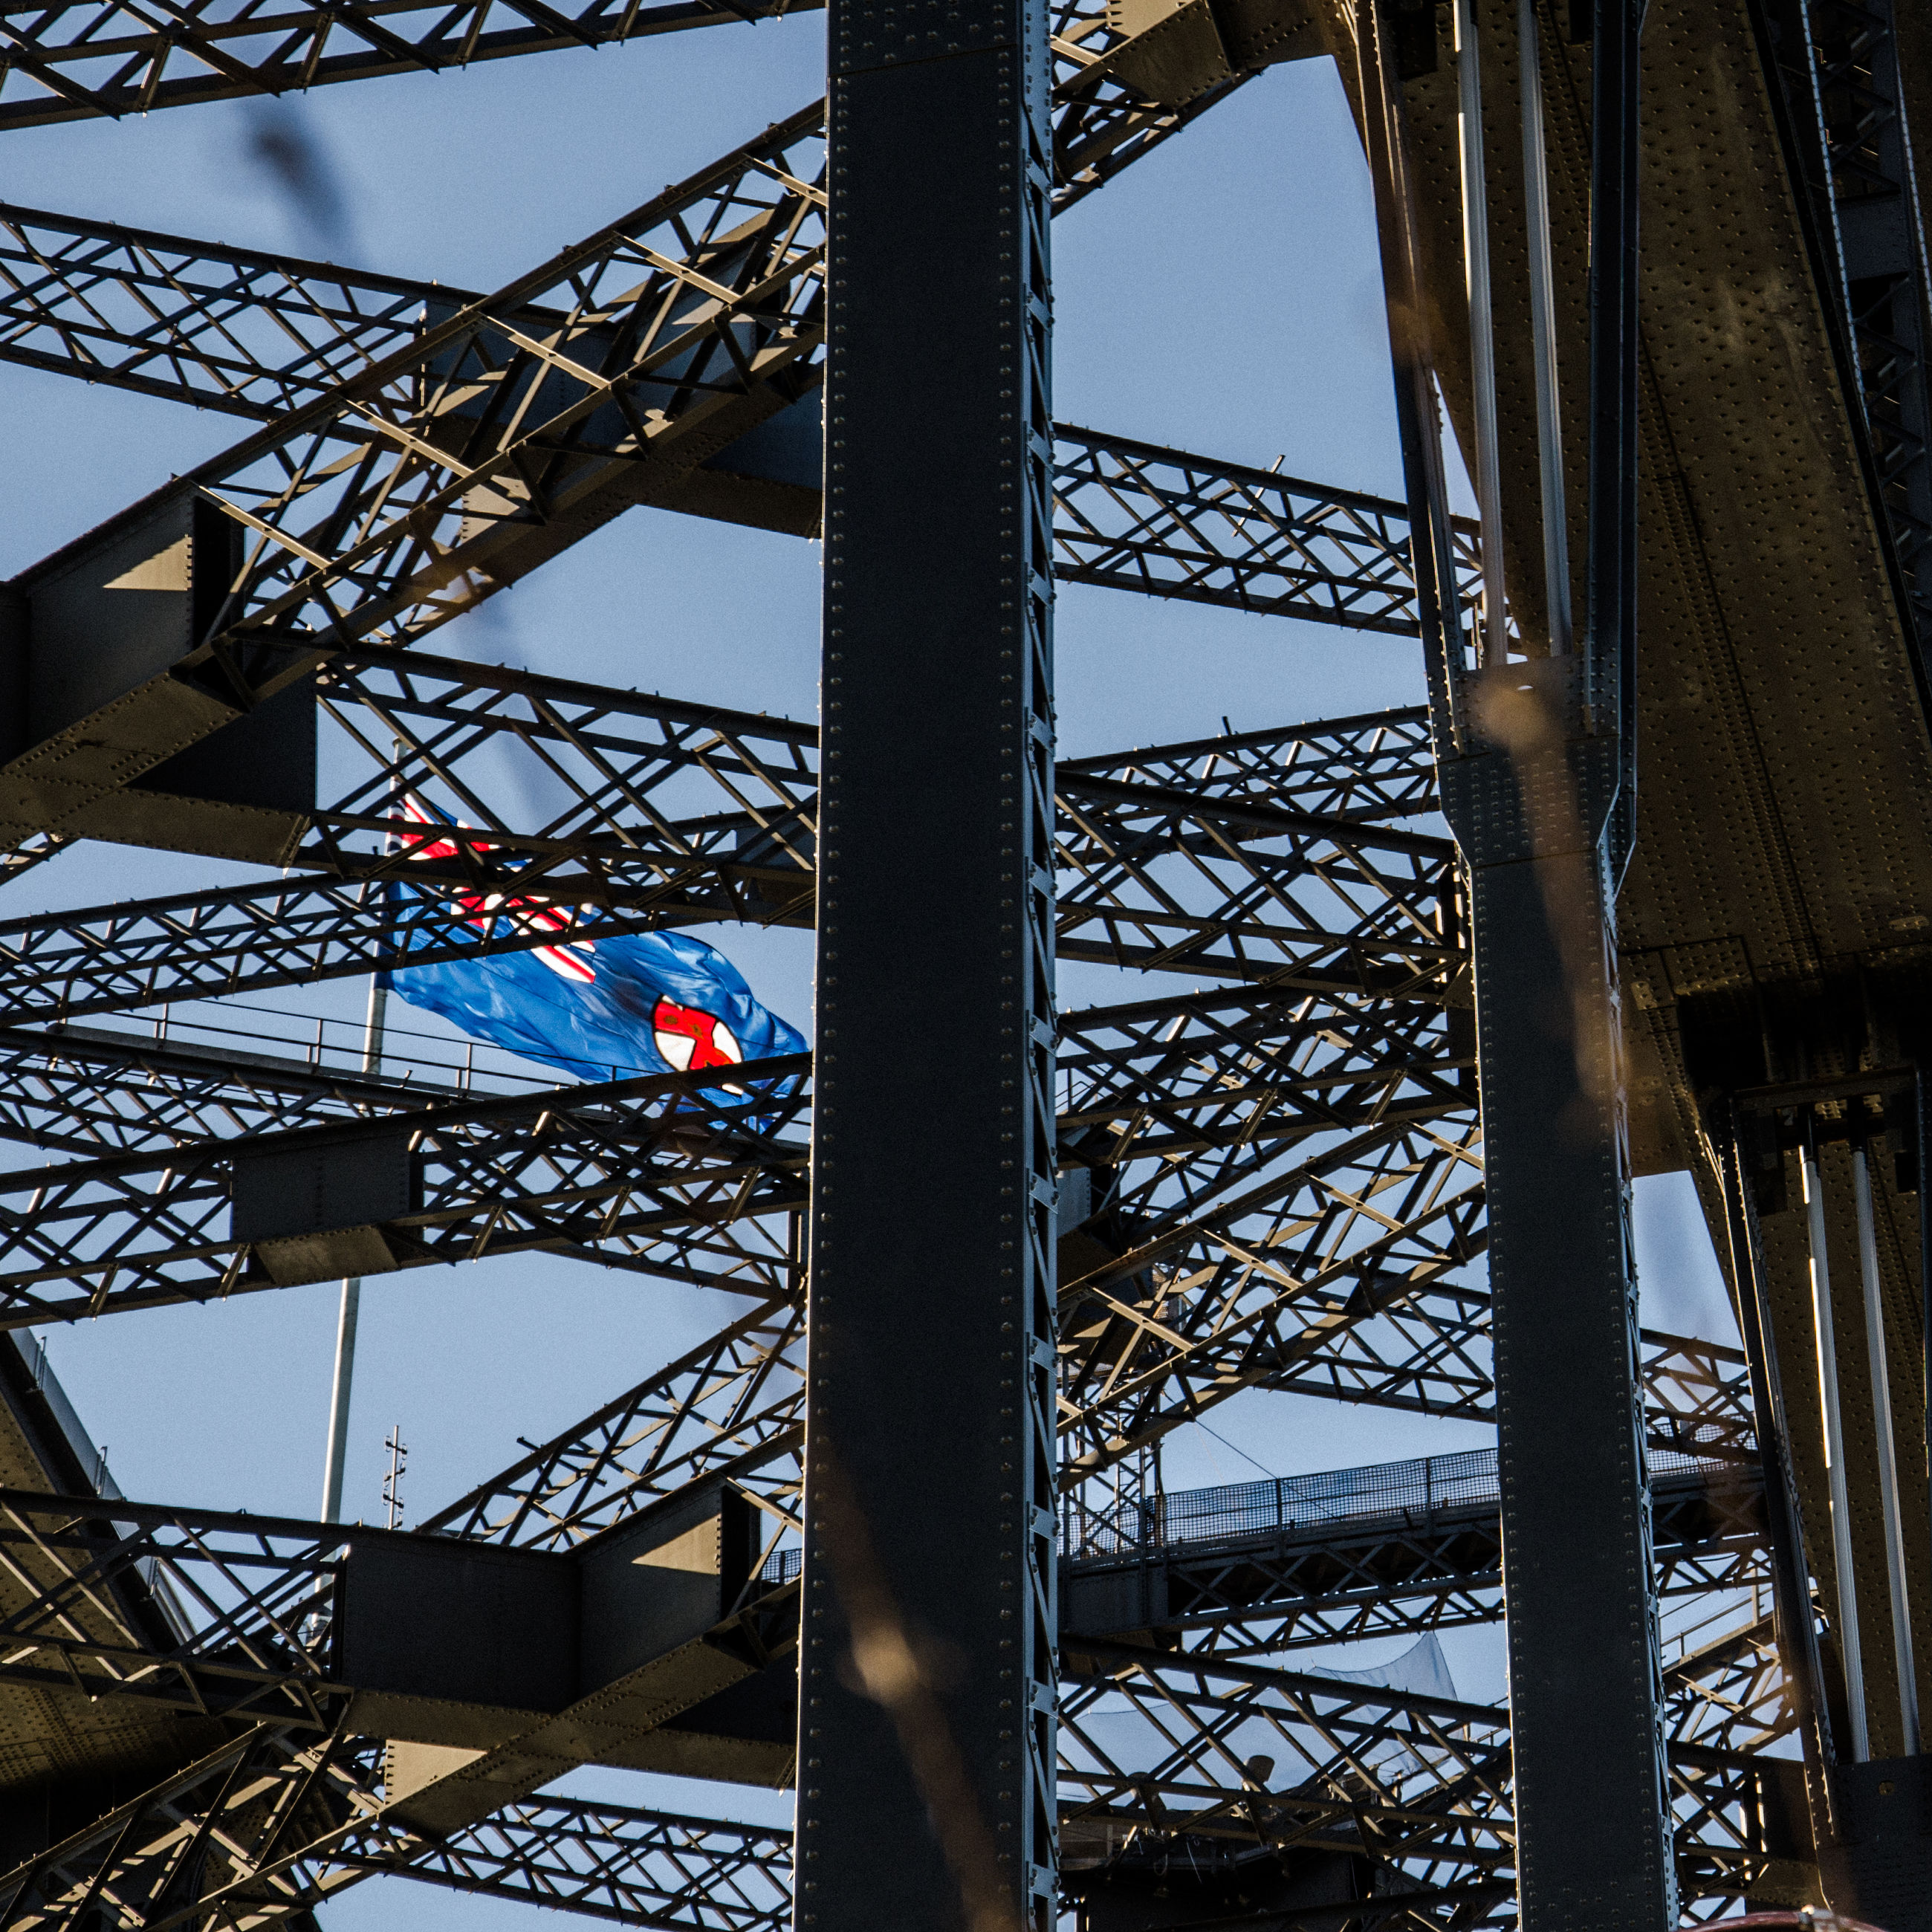 architecture, built structure, metal, low angle view, day, outdoors, nature, no people, sky, arts culture and entertainment, connection, bridge, bridge - man made structure, blue, flag, travel destinations, city, grid